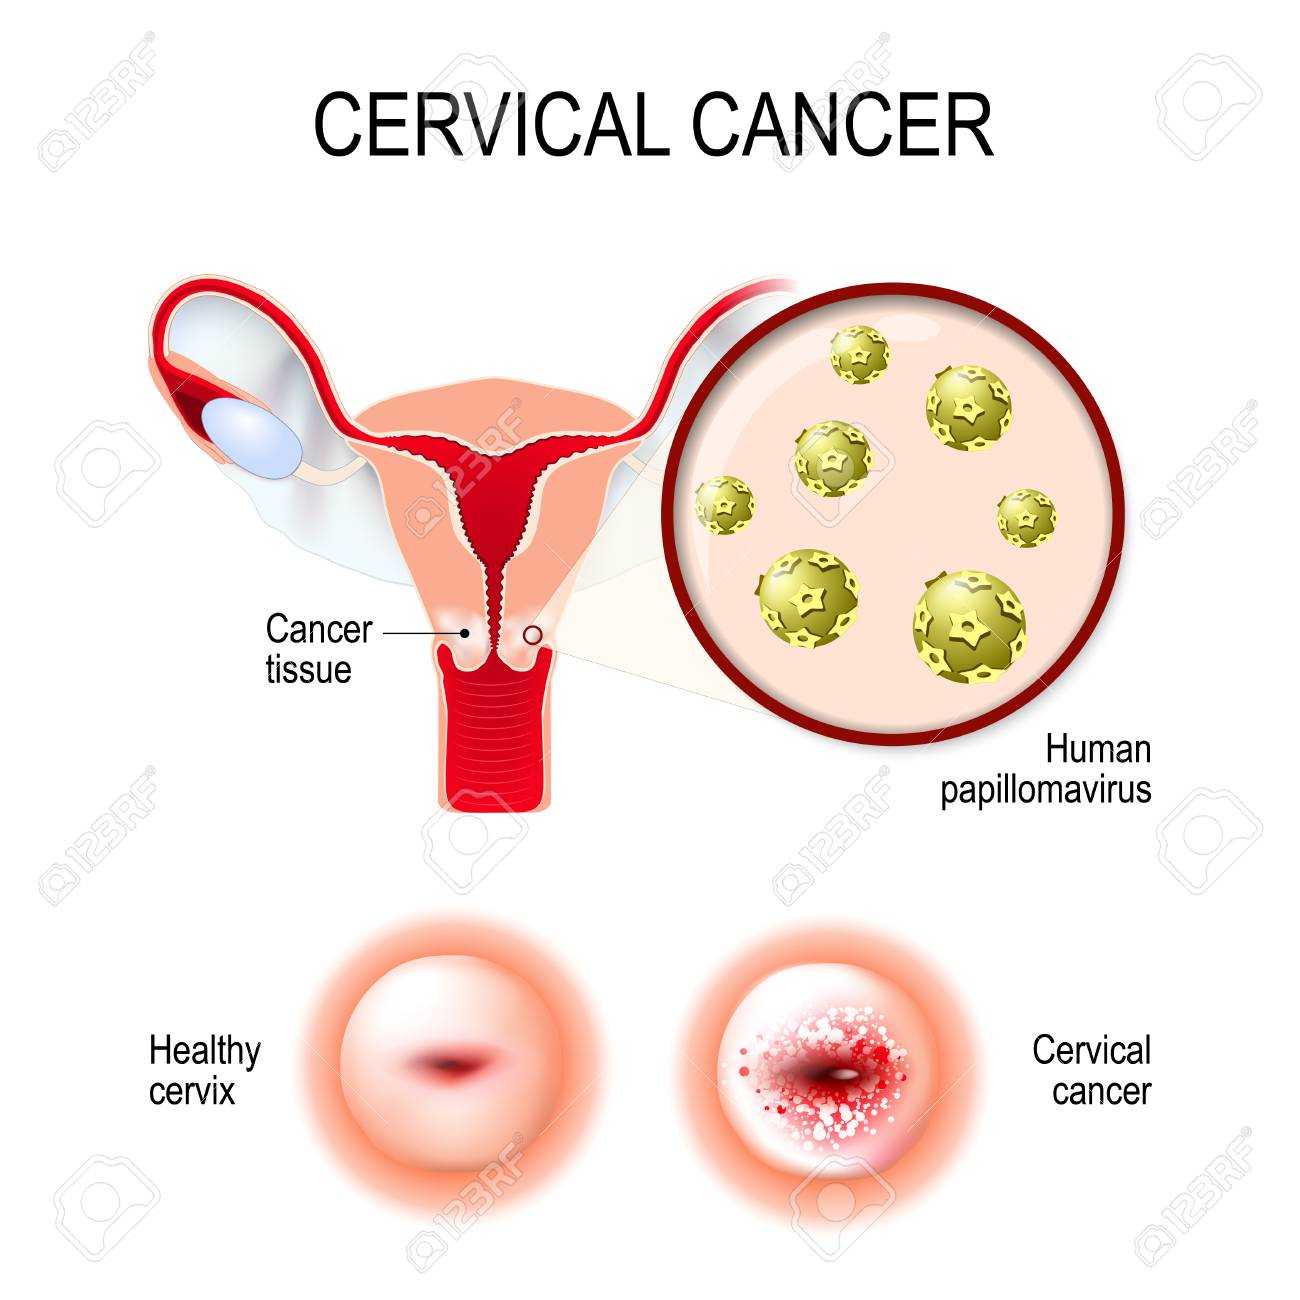 cervical cancer natural treatment hpv warts pubic area